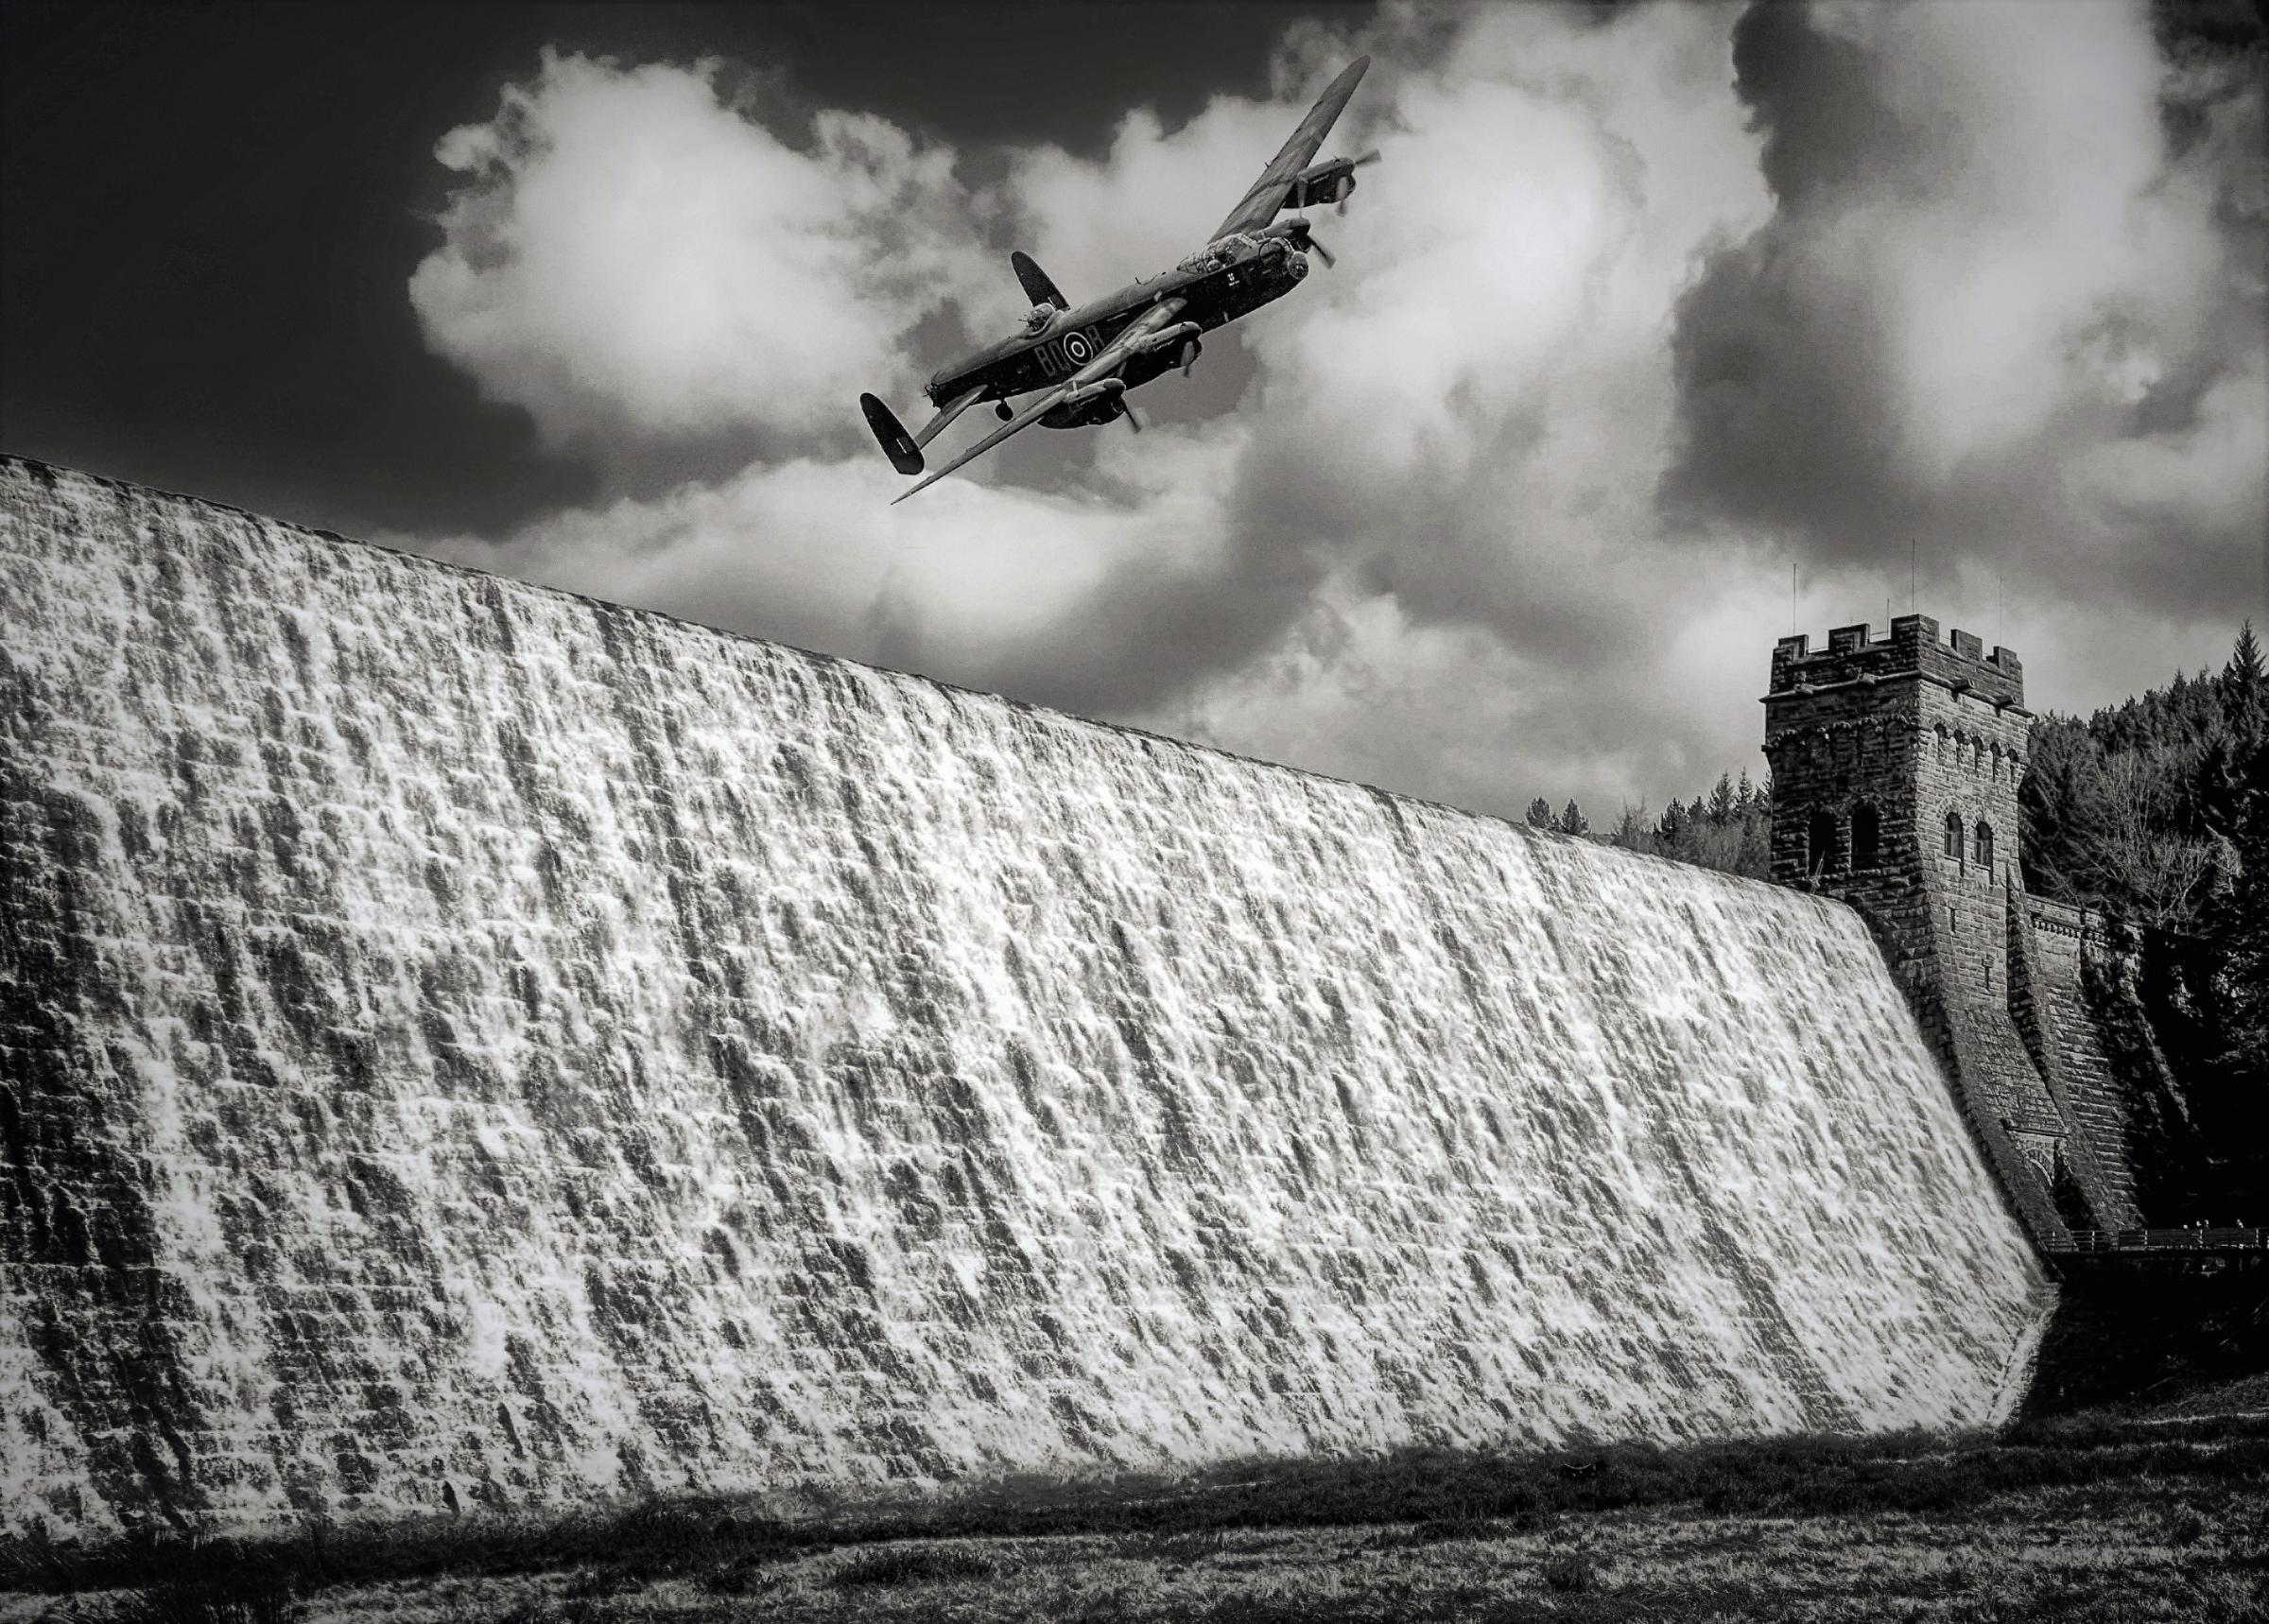 Dam Busters remake: will Peter Jackson and Stephen Fry ever make it?